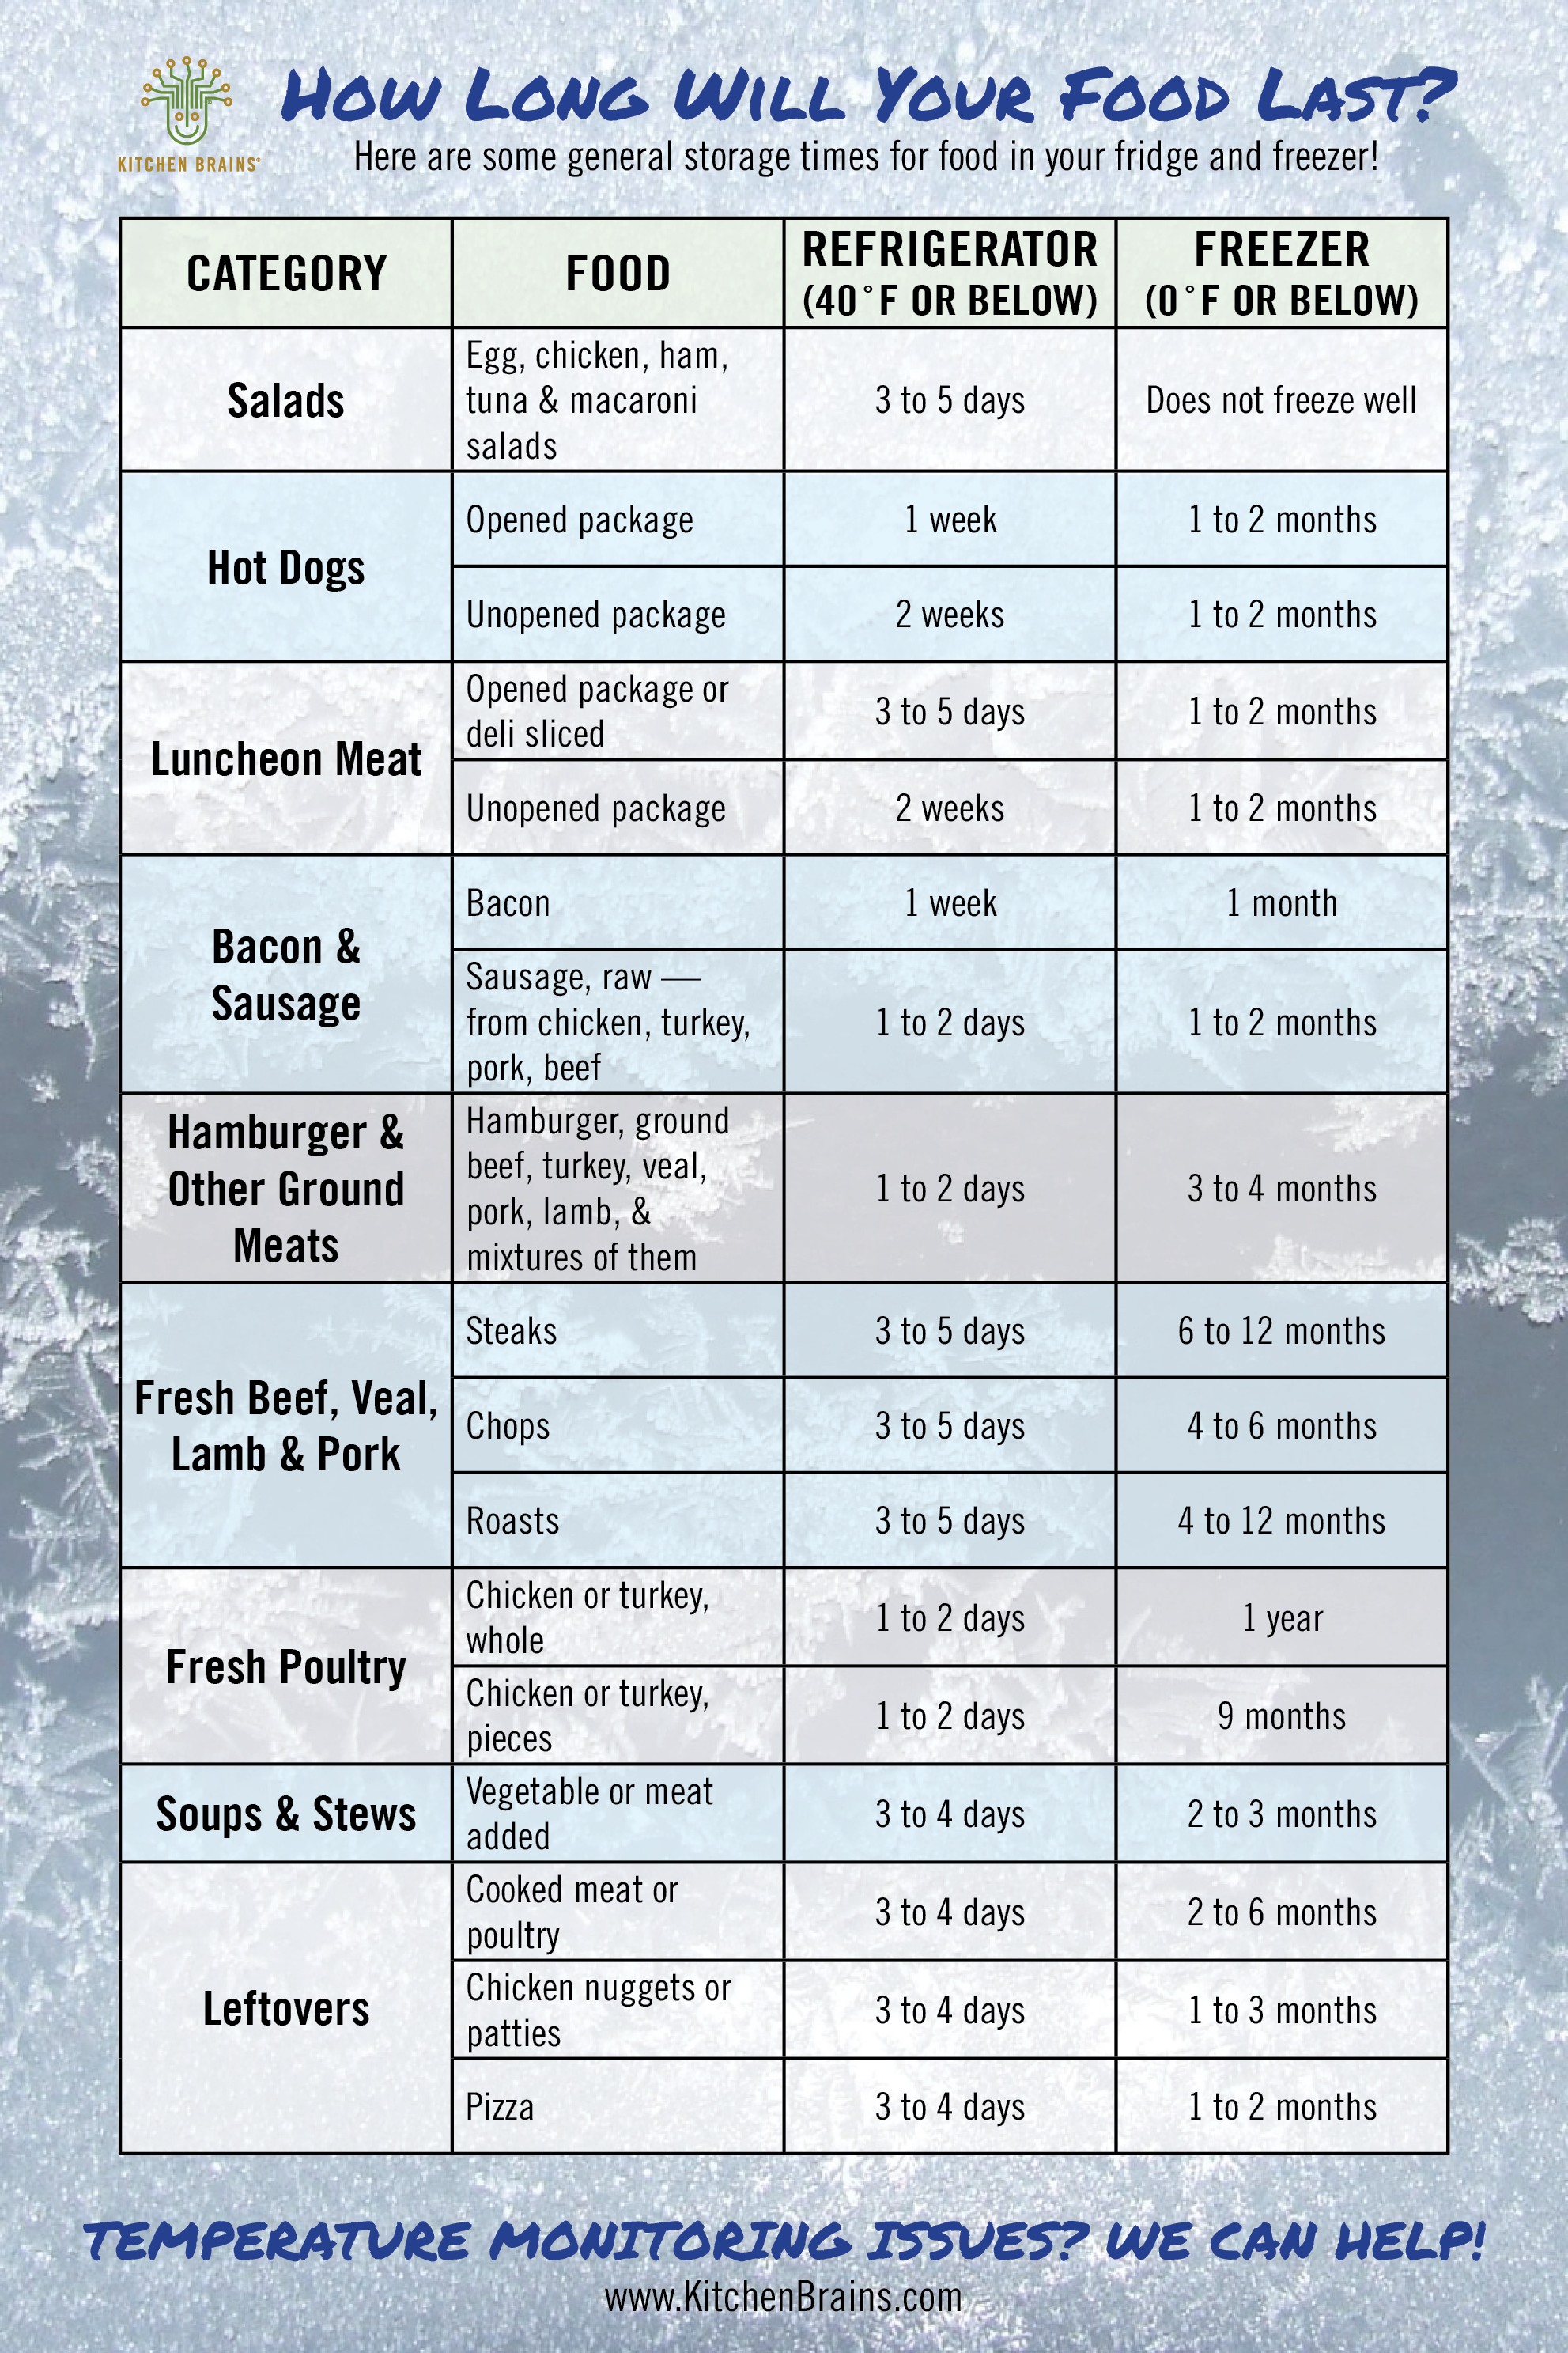 How long will your food last? Here are some general storage times for food  in your fridge and freezer. Temperature monitori… | Fridge freezers, Freezer,  Food safety